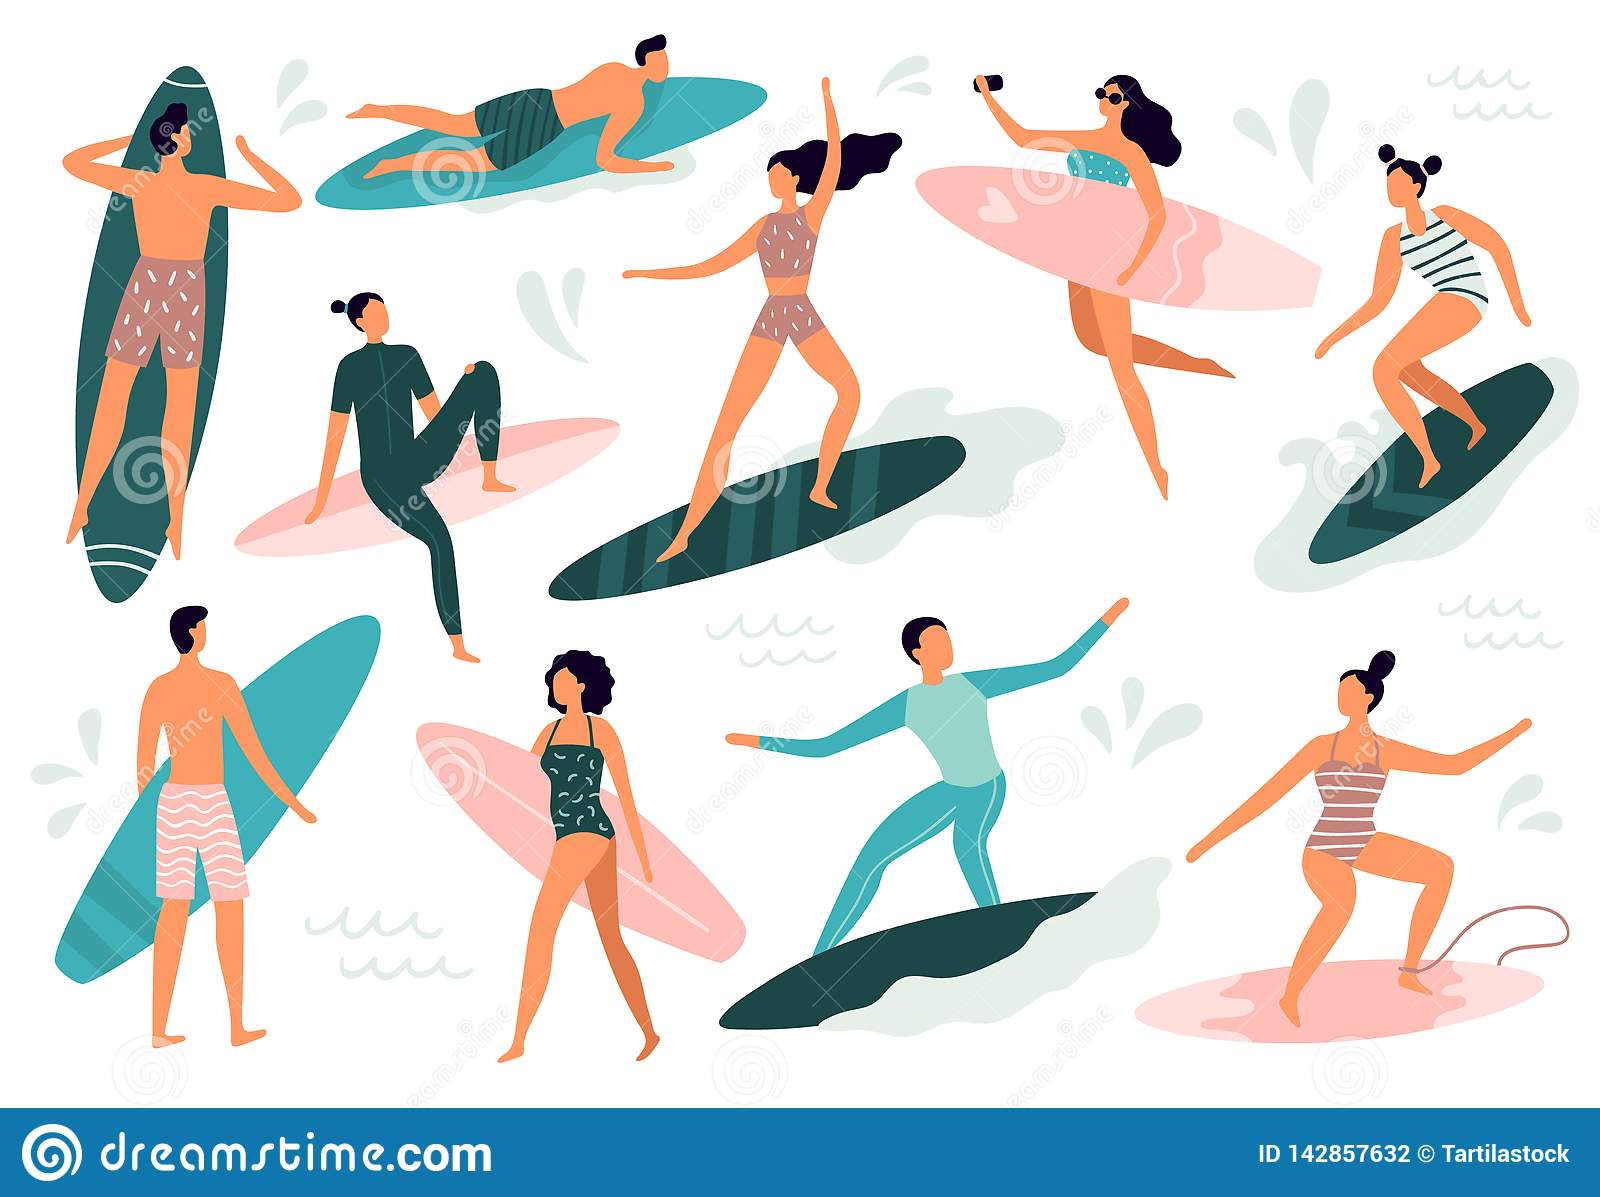 Surfing people. Surfer standing on surf board, surfers on beach and summer wave riders surfboards vector illustration